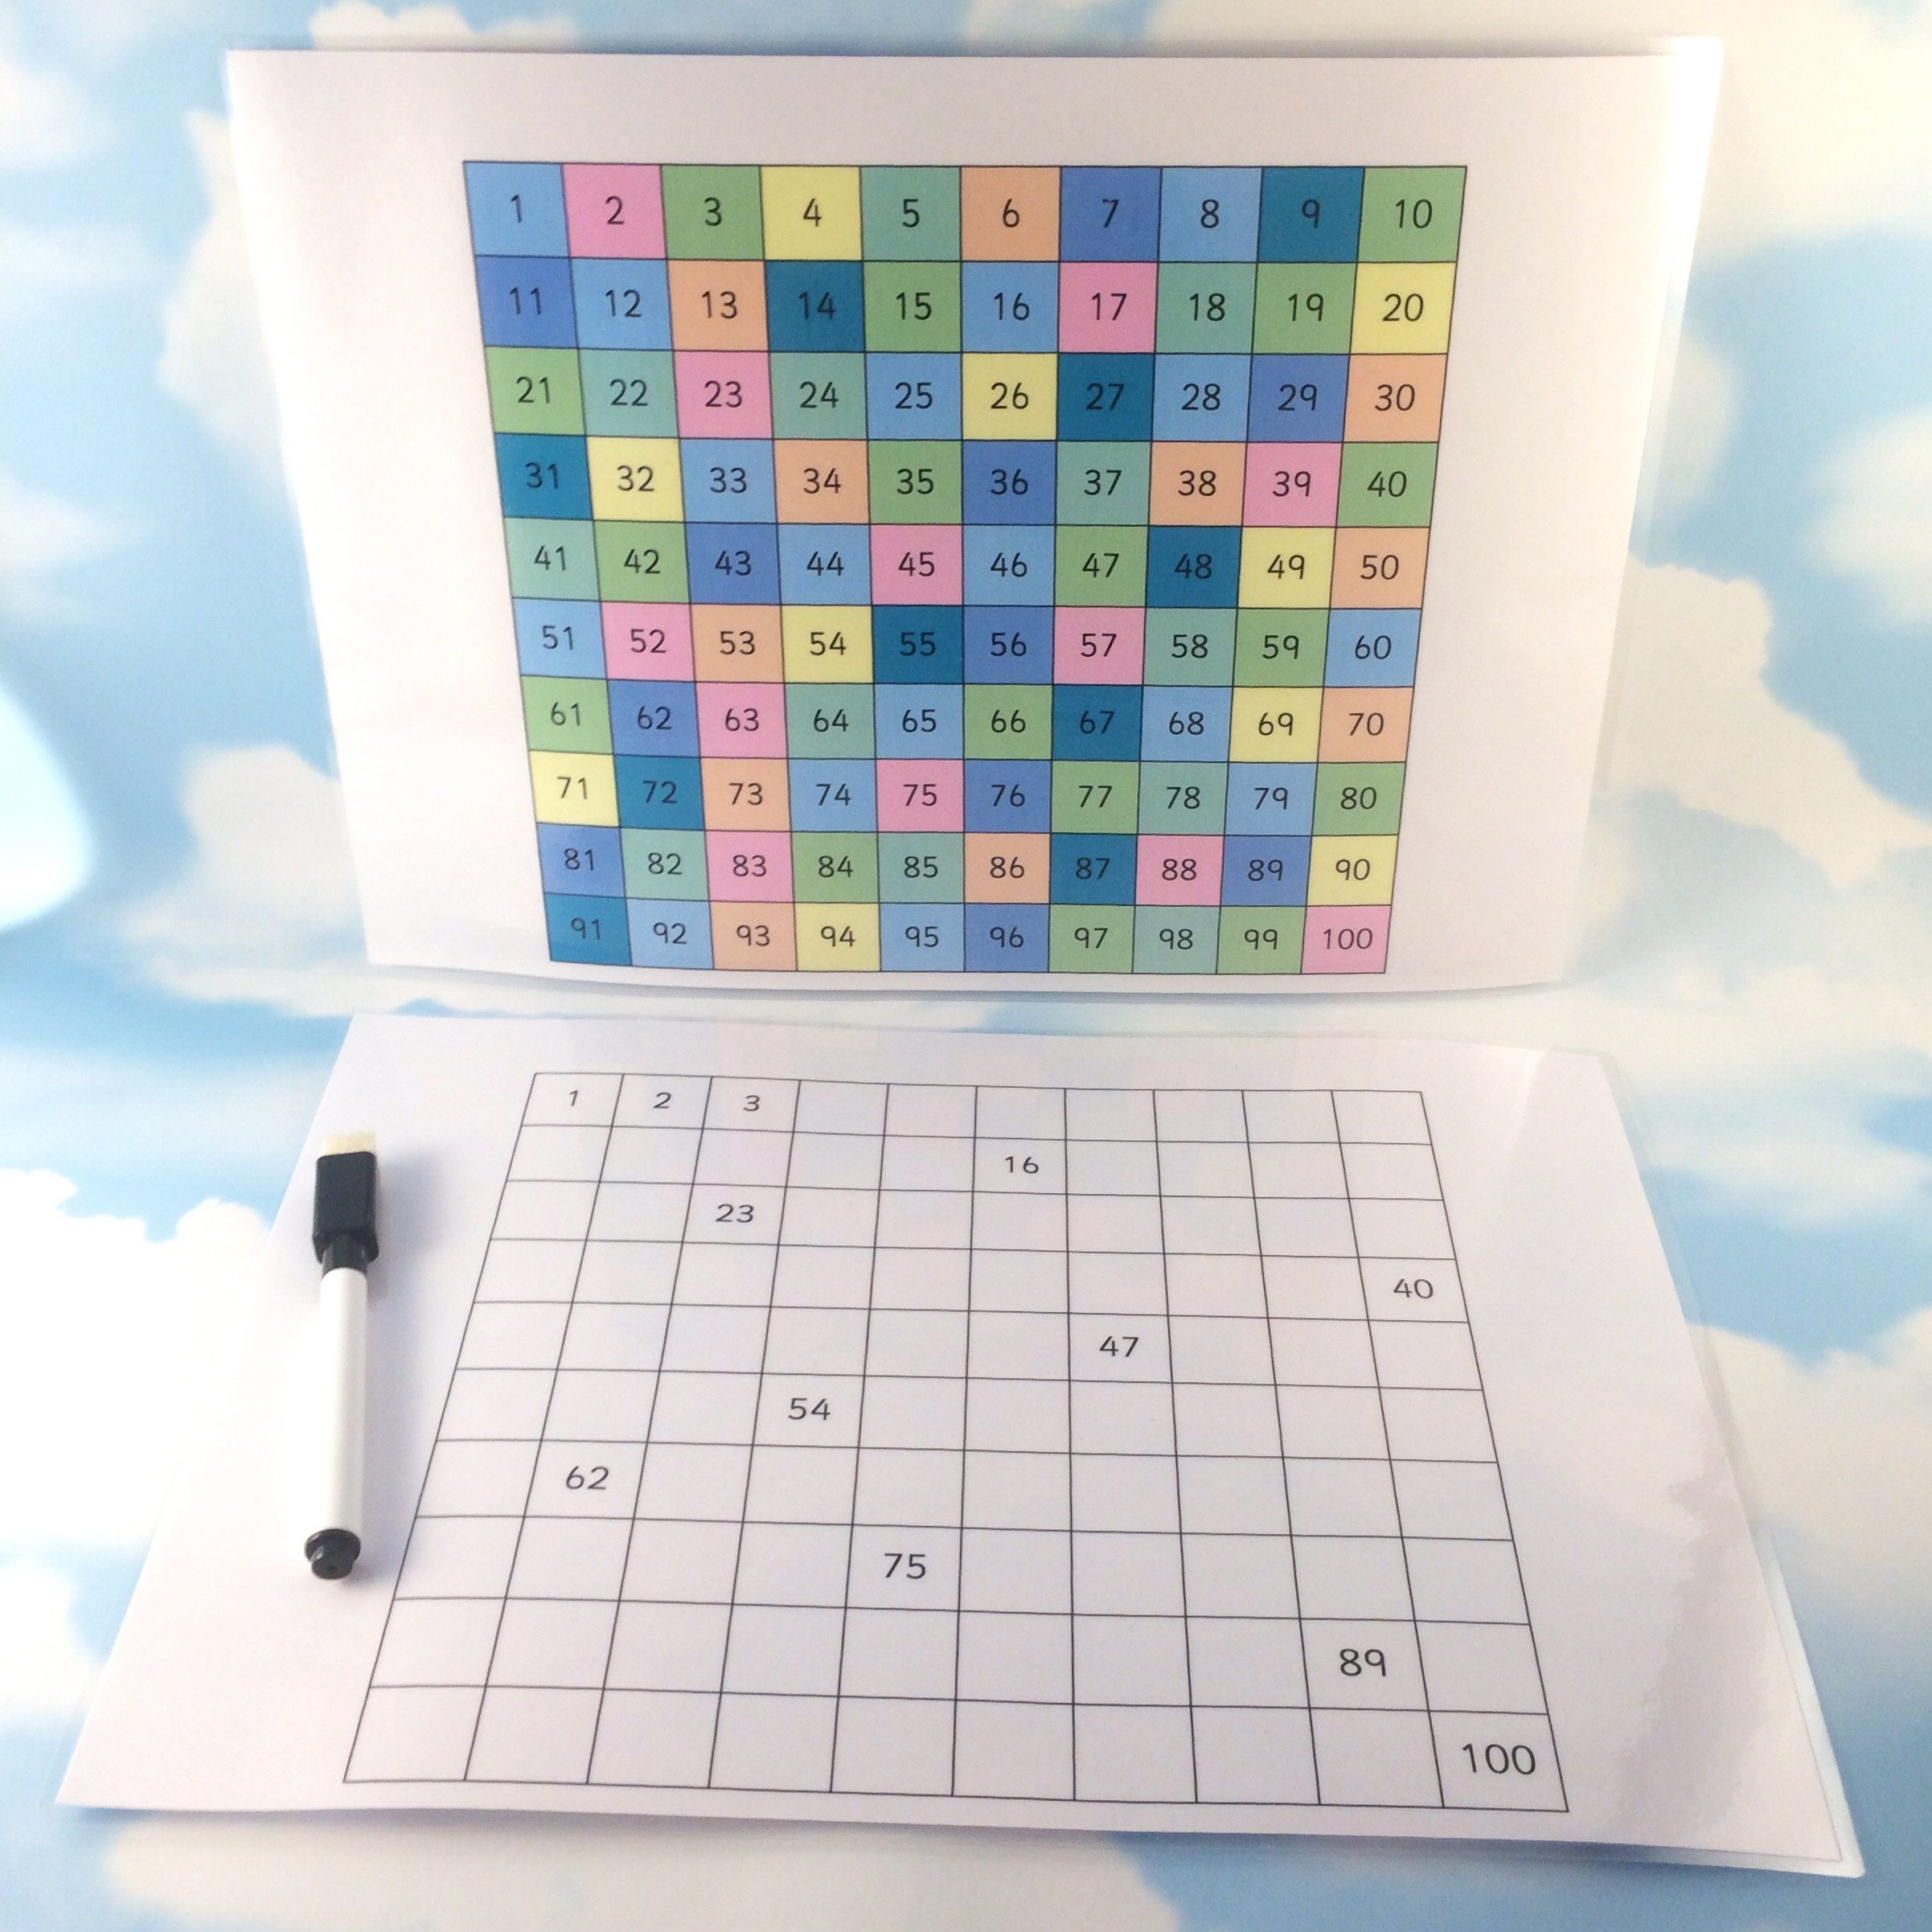 30 Worksheets Coloring A Grid 2 Reginald Penhorst